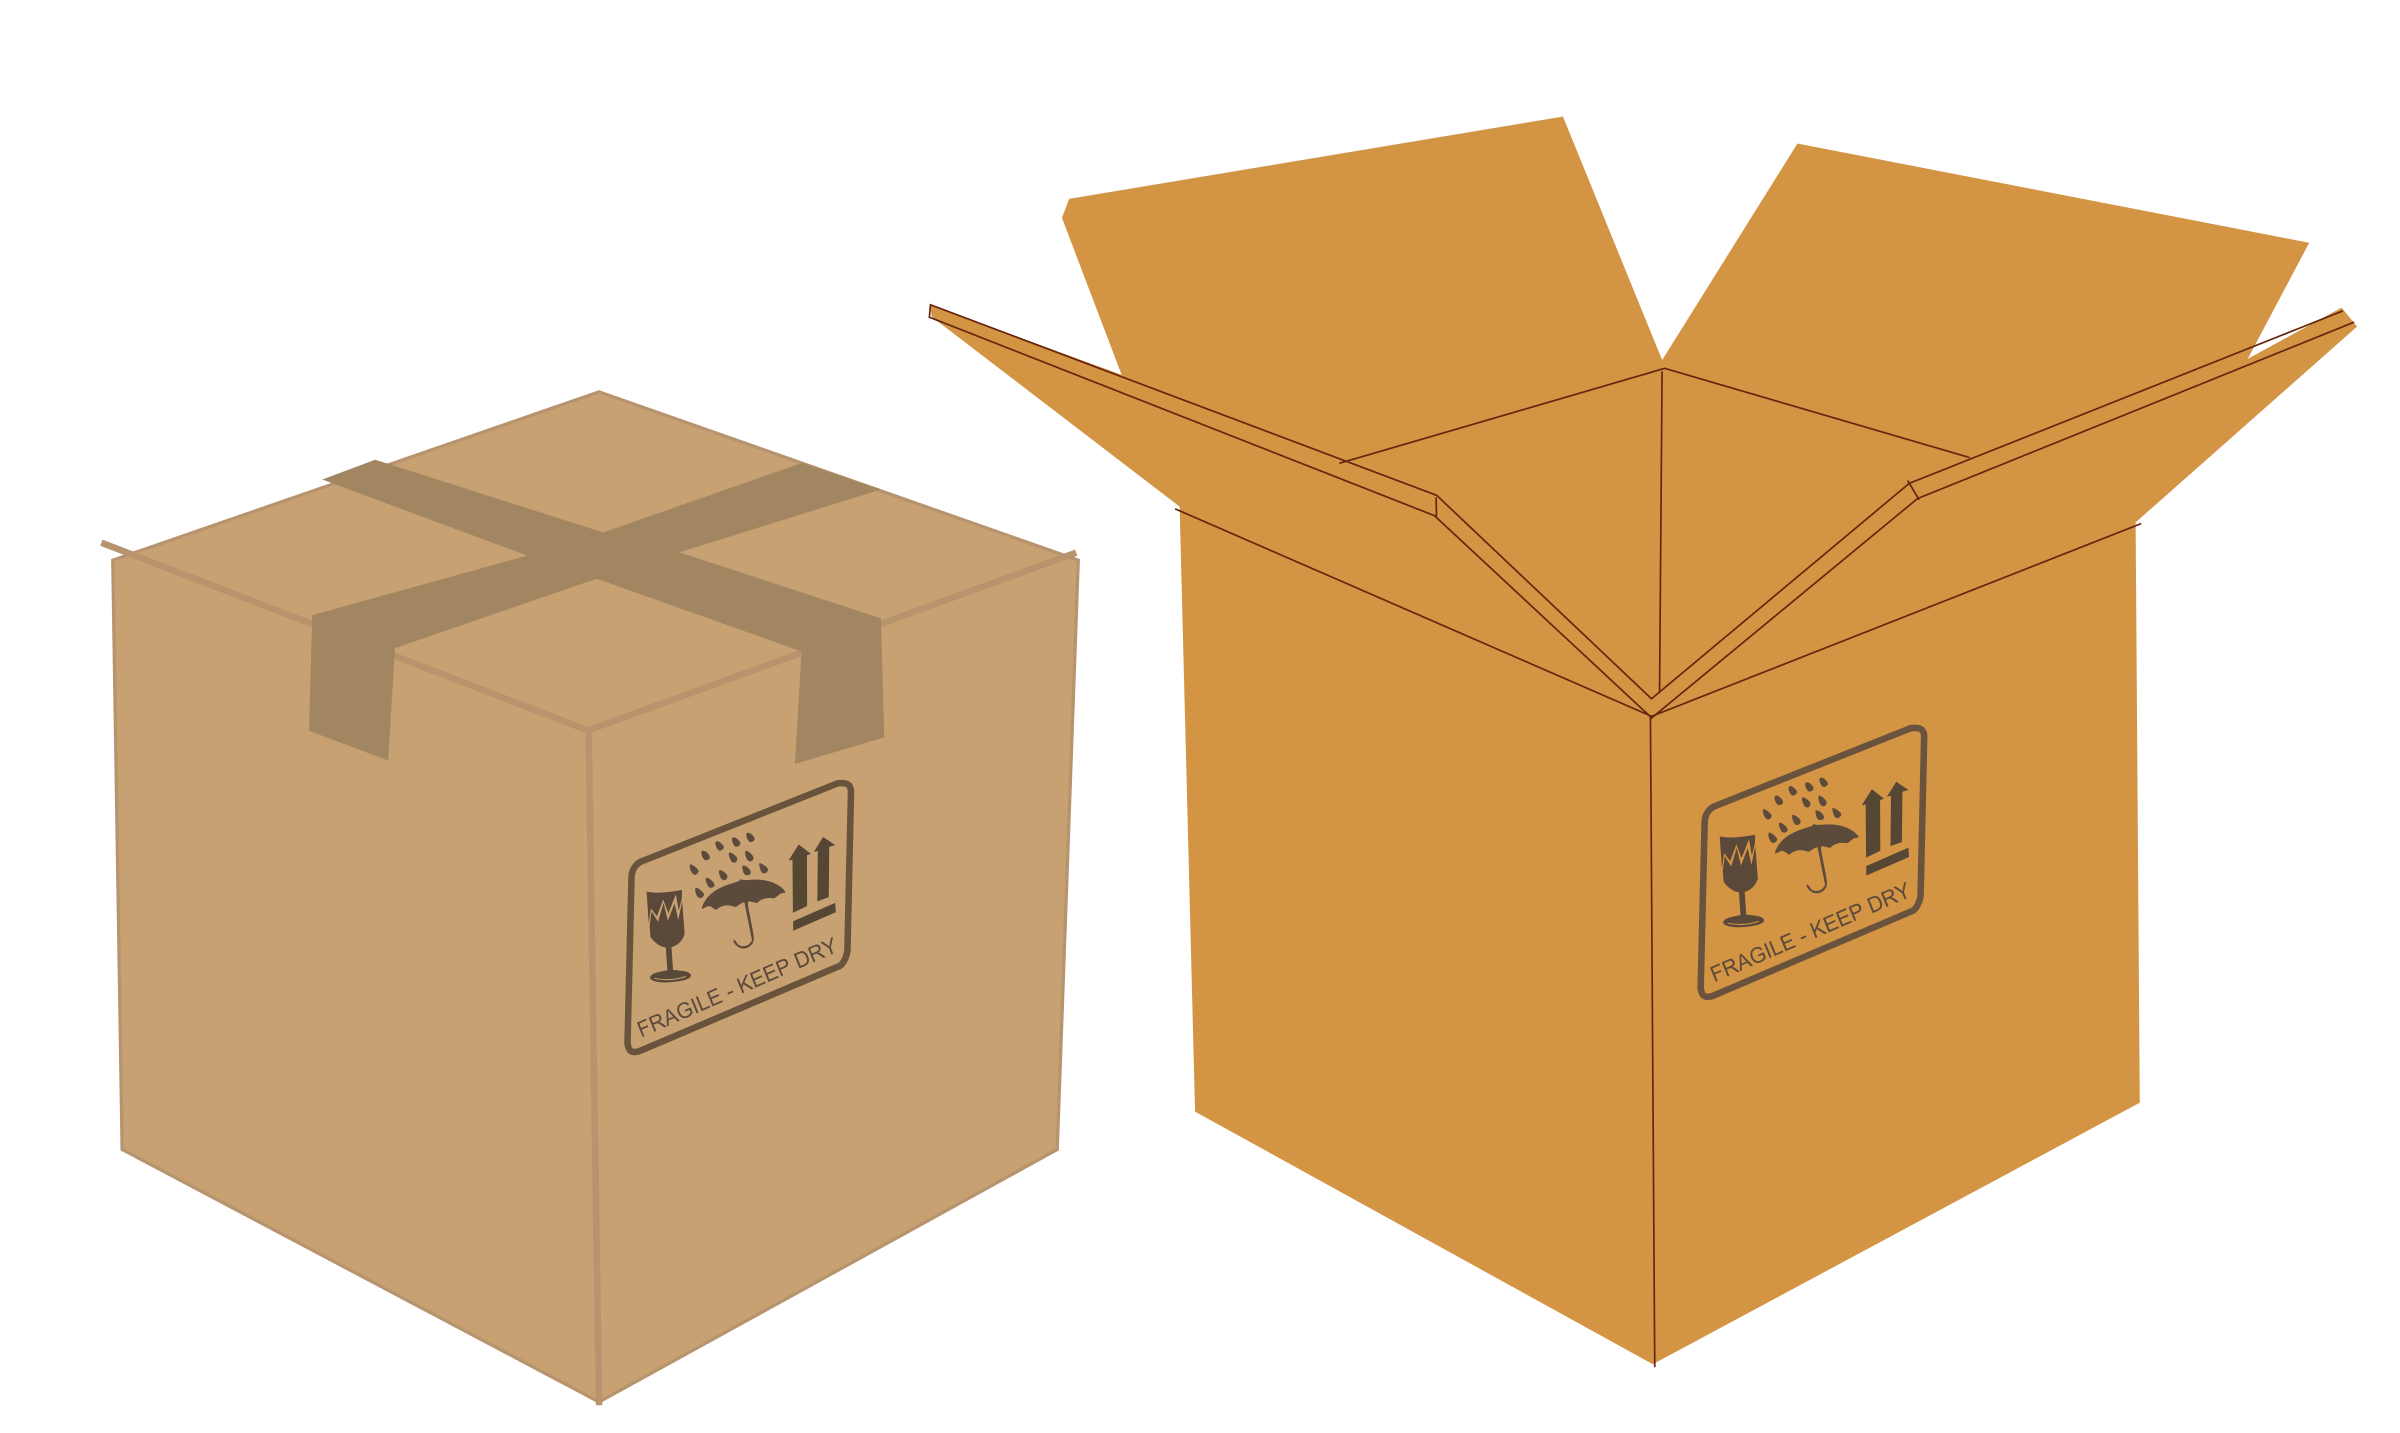 Boxes clipart transparent. Open and closed big